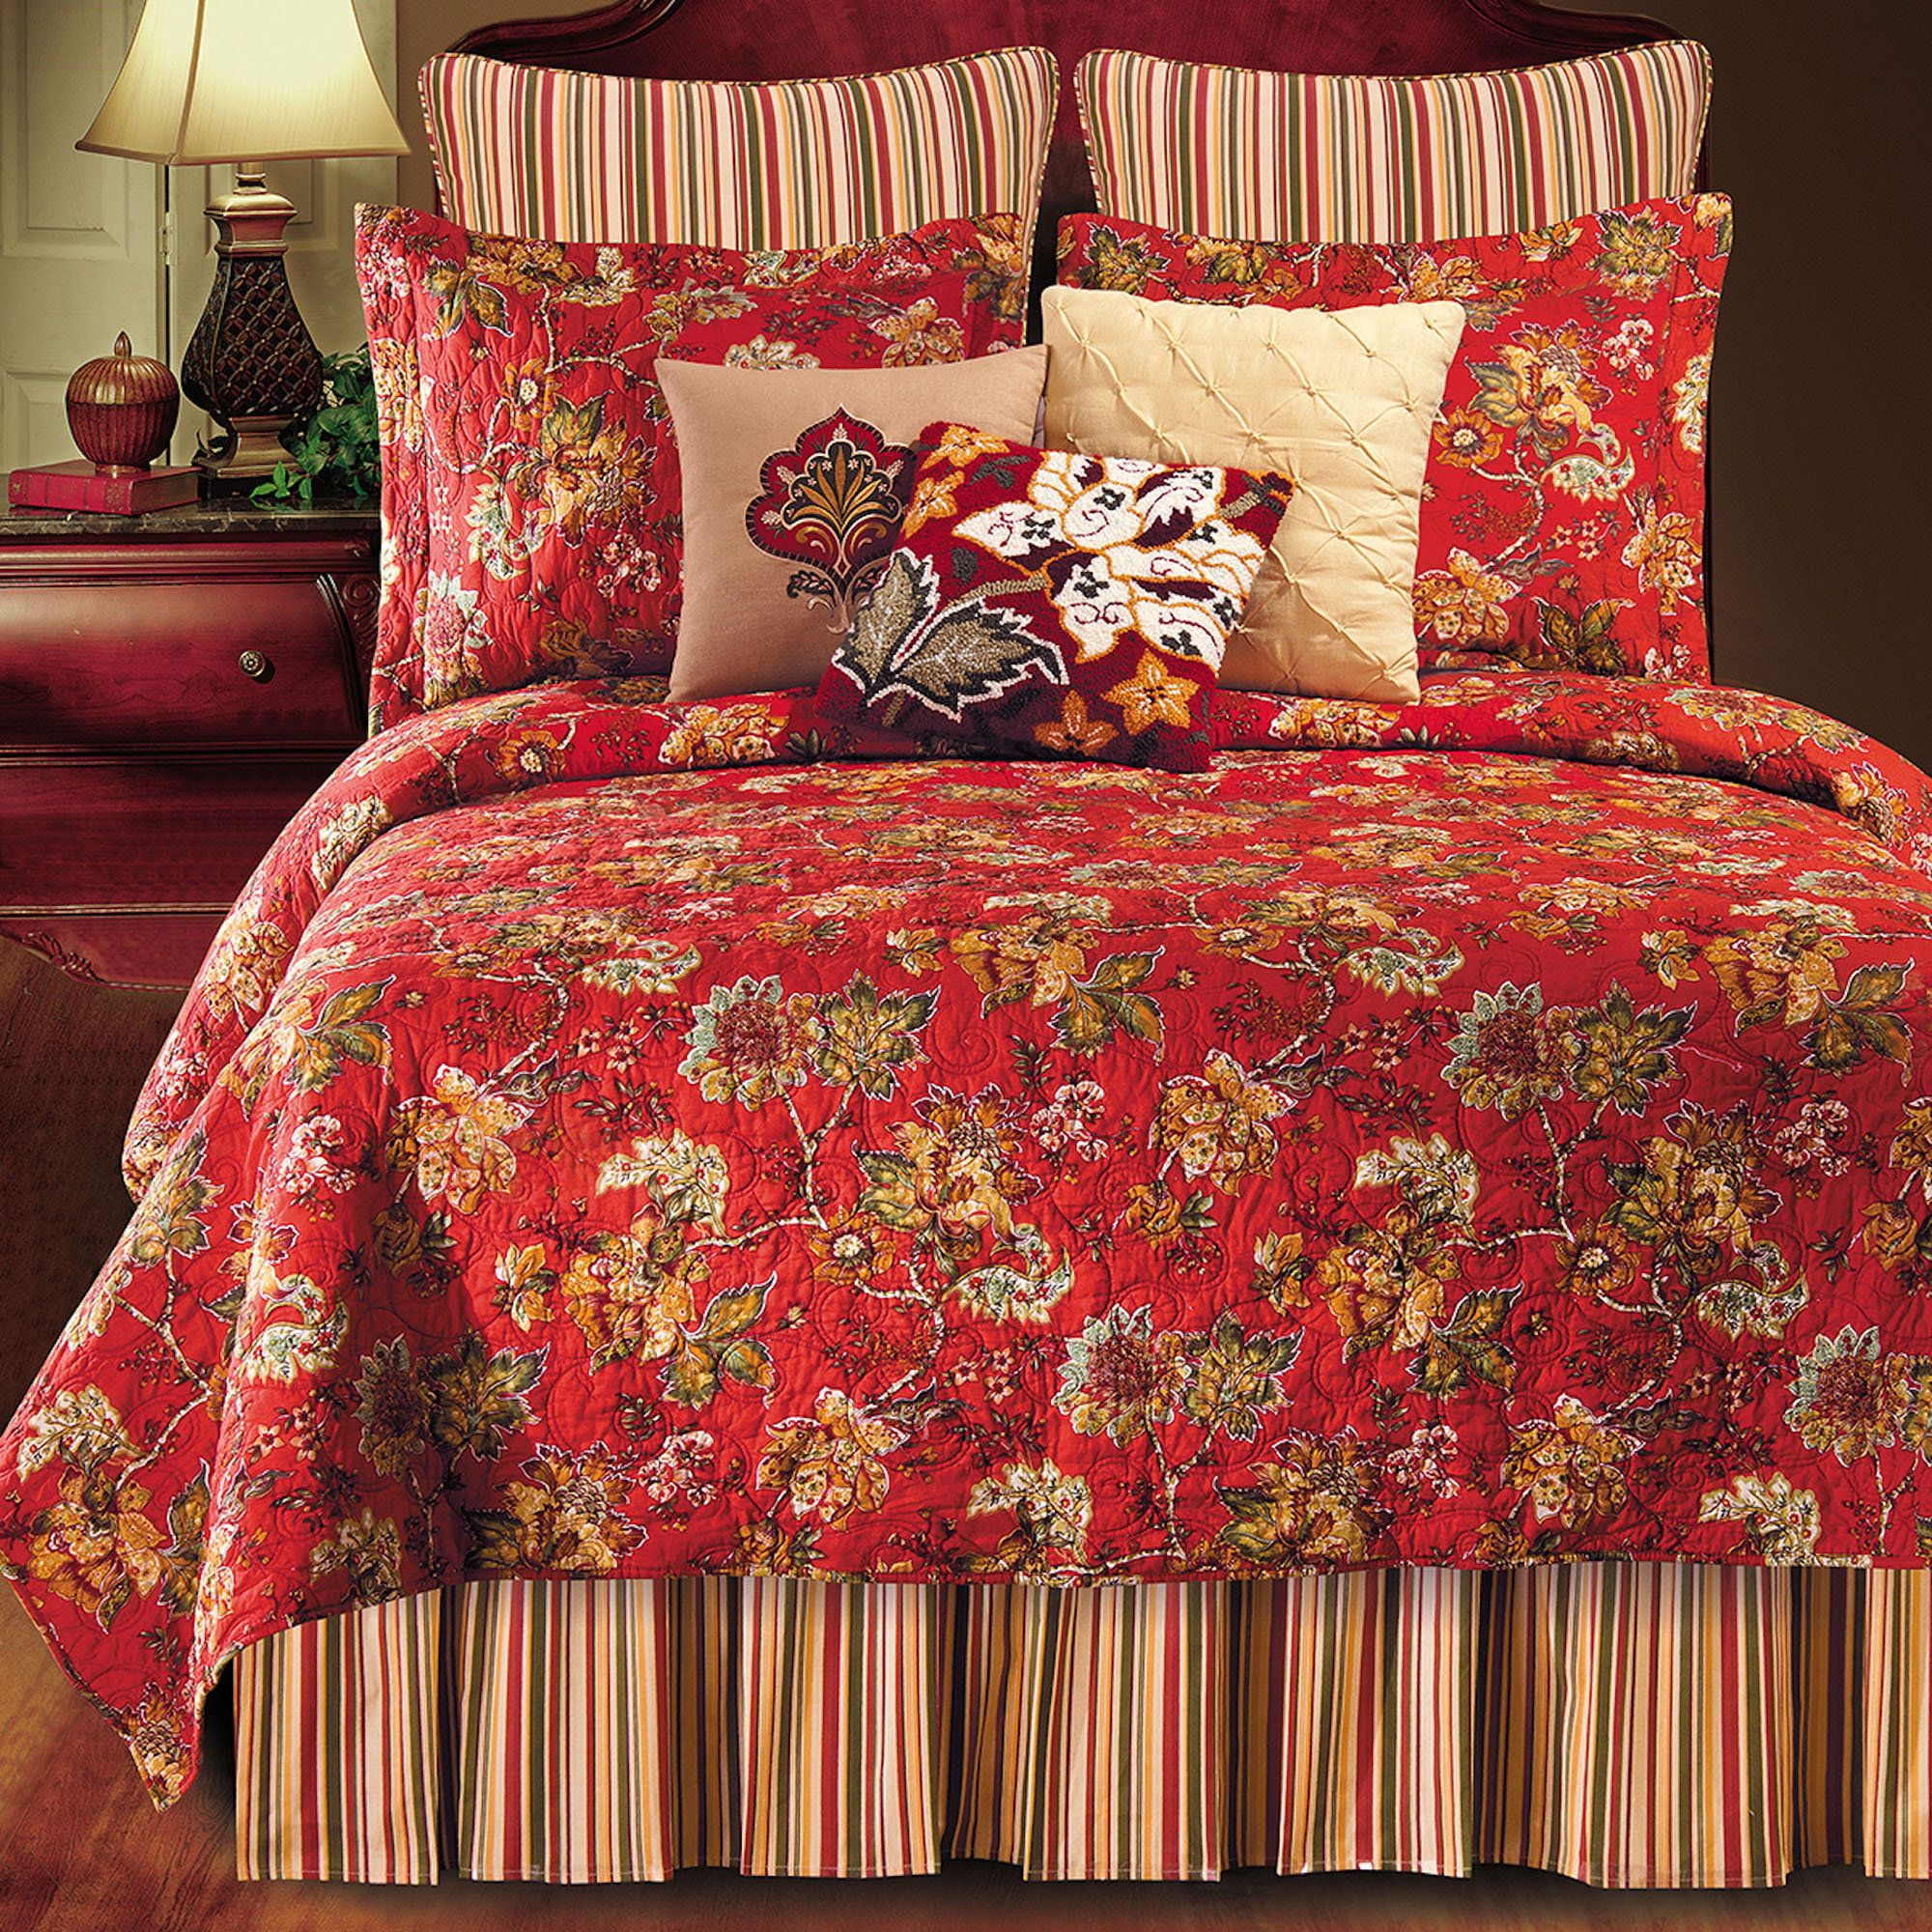 king duvet dp co home kitchen printed bedding set red quilt amazon bed cover size uk